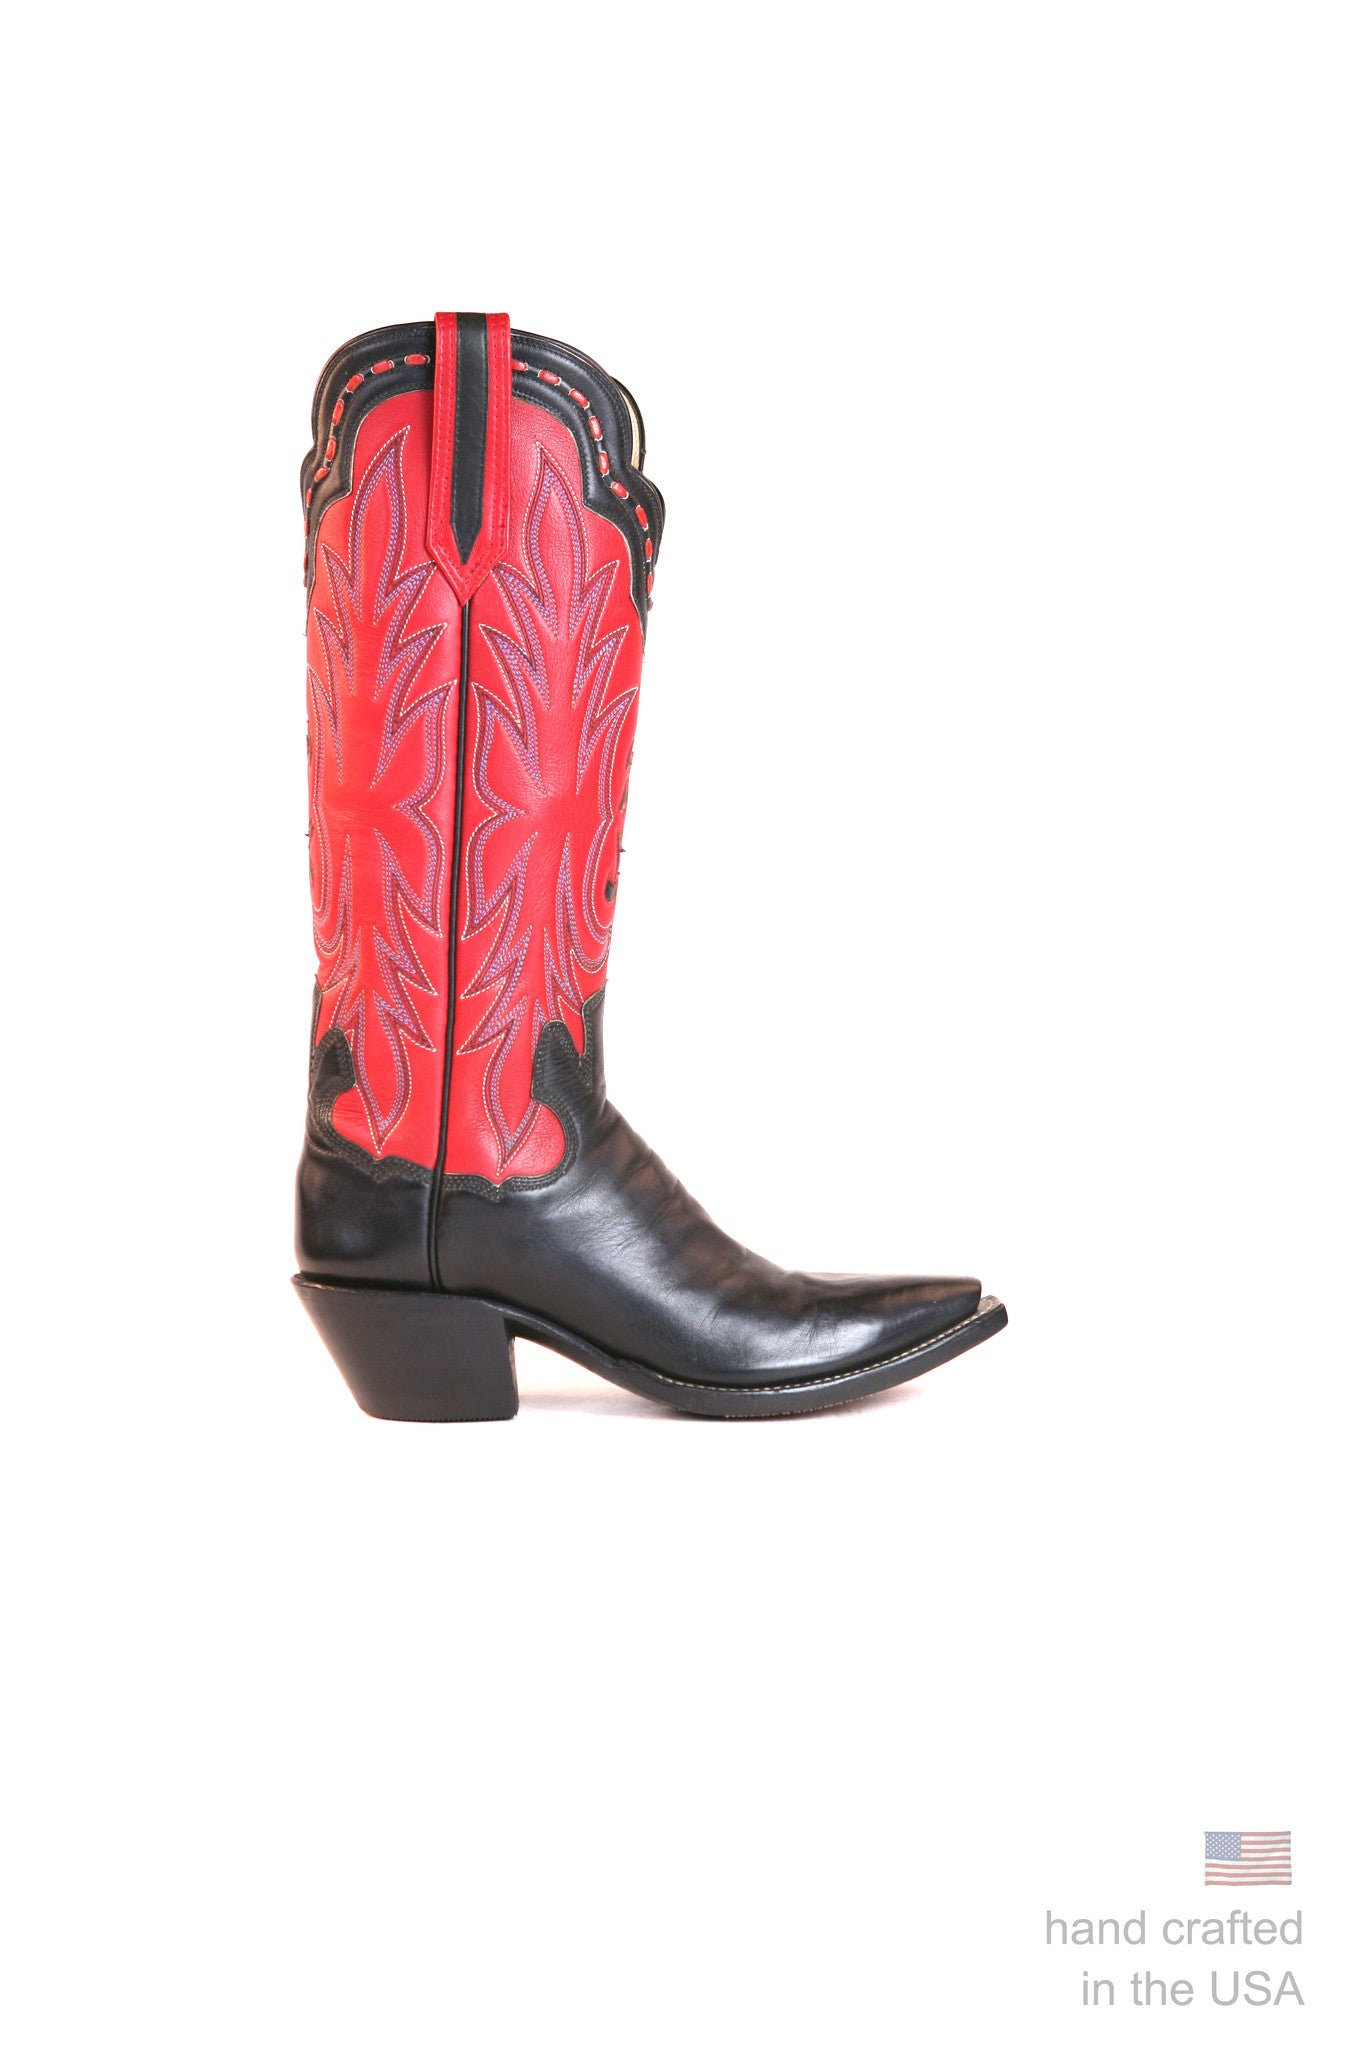 Singles: Boot 0074: Size 5.5 A